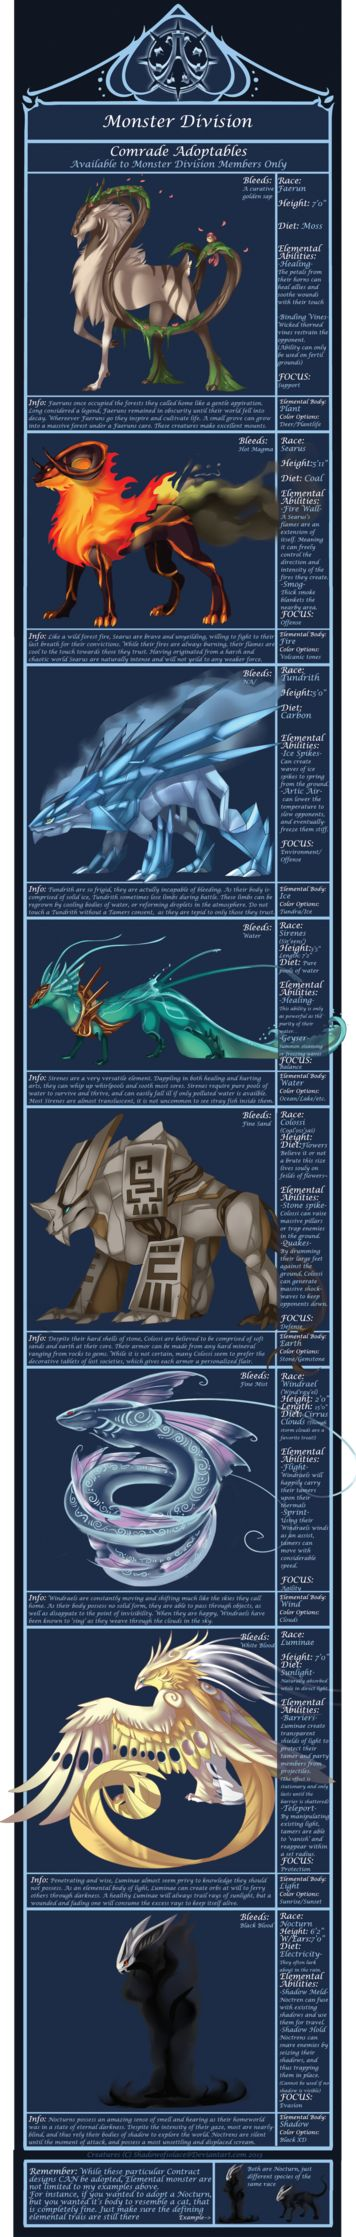 AE_Contract Adopts by ShadowOfSolace on DeviantArt